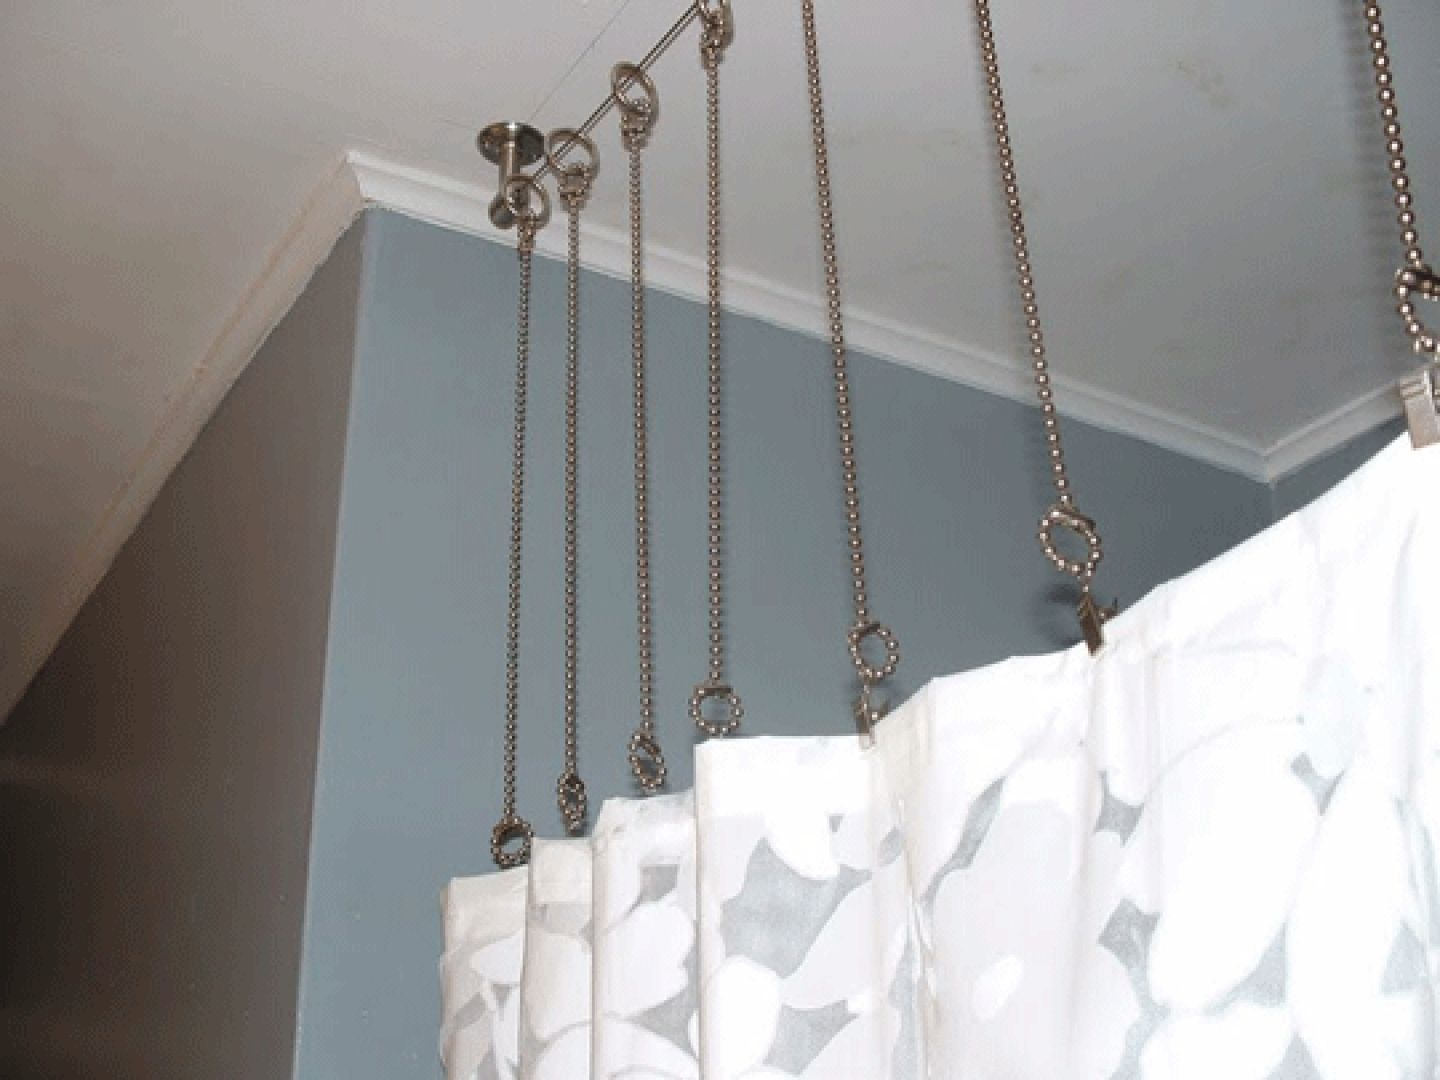 Shower Curtain Hanging Chains Diy Shower Curtain Unique Shower